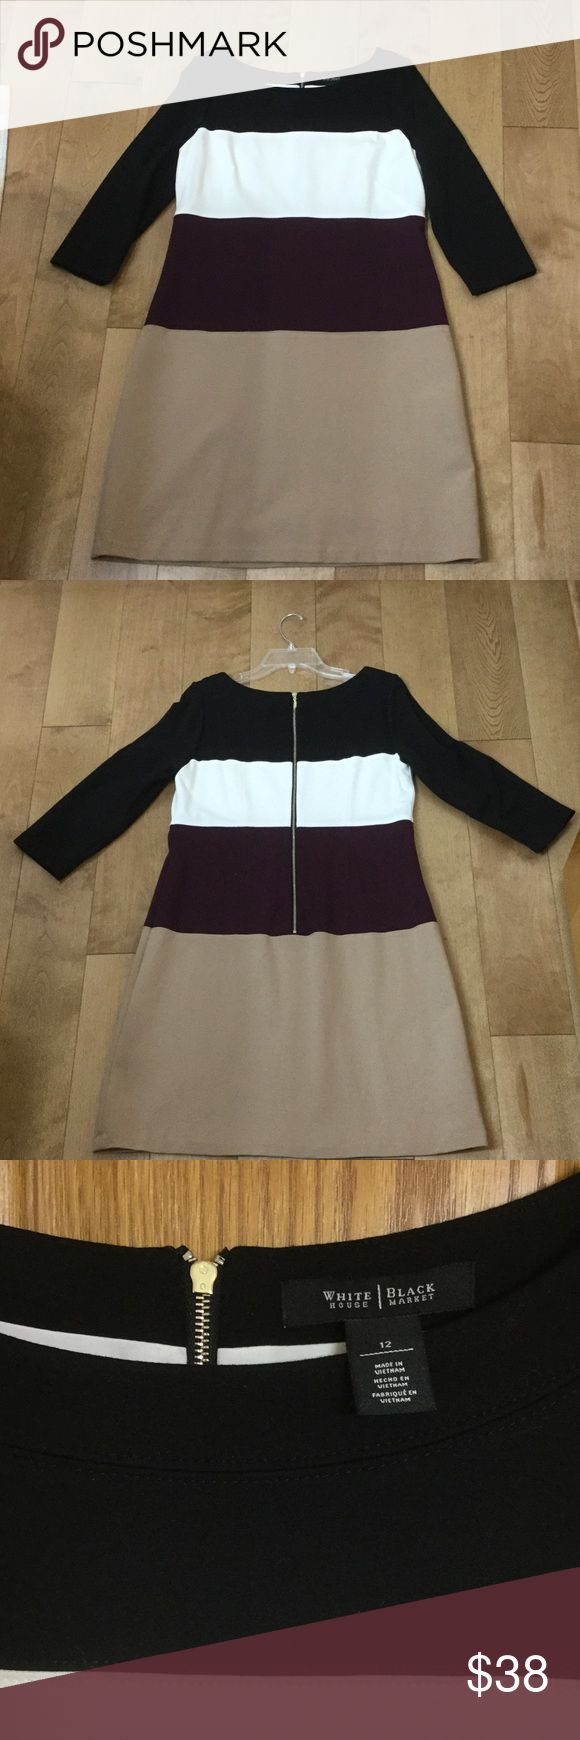 White House Black Market dress WHBM color block shift dress dress.  Black, ivory, plum, and camel.  3/4 length sleeve, dress falls Just above knee. Size 12. Fully lined, very comfortable. In great condition! White House Black Market Dresses